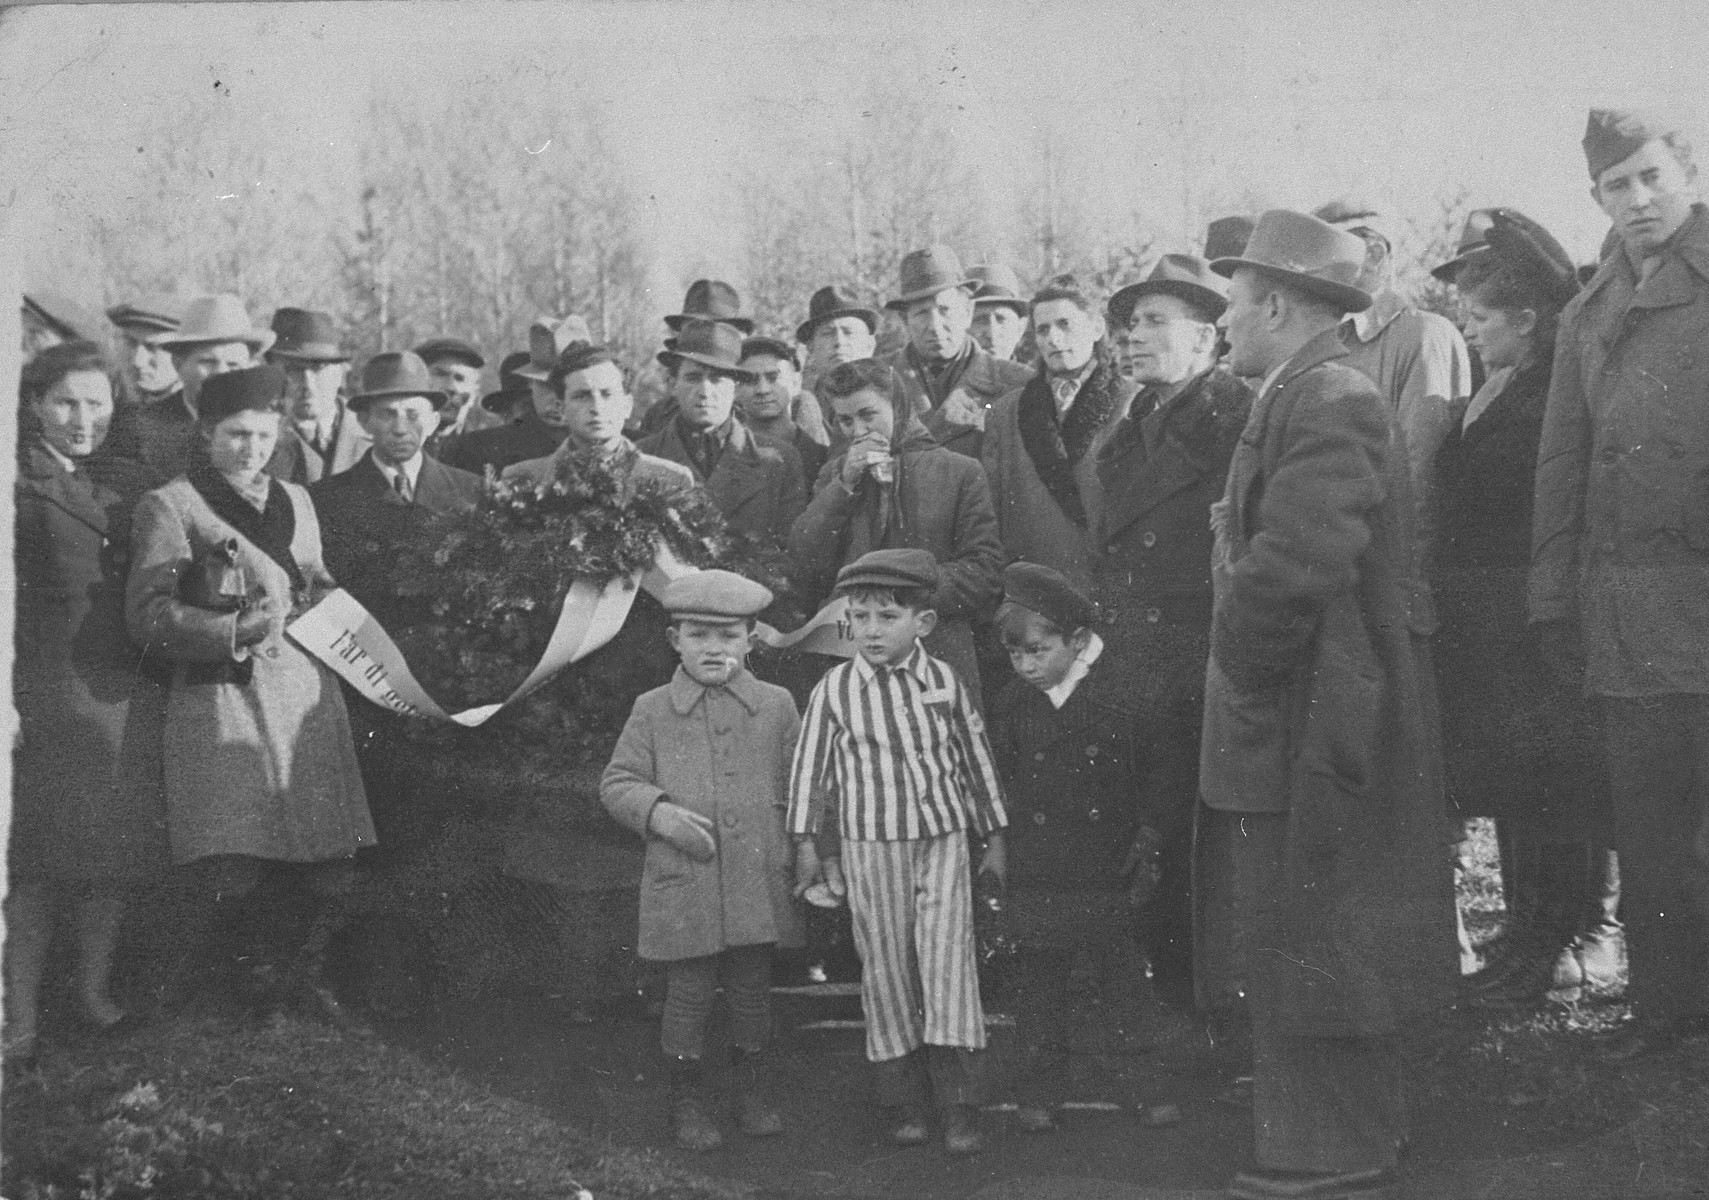 Jewish DPs attend a memorial service in the Buchenwald concentration camp.    The little boy in the concentration camp uniform may be Joseph Schleifstein. The little boy in the beige coat and hat has been idenitifed as Lawrence Swern (Cwern). Jack Borenstein is the man standing behind Lawrence Swern.